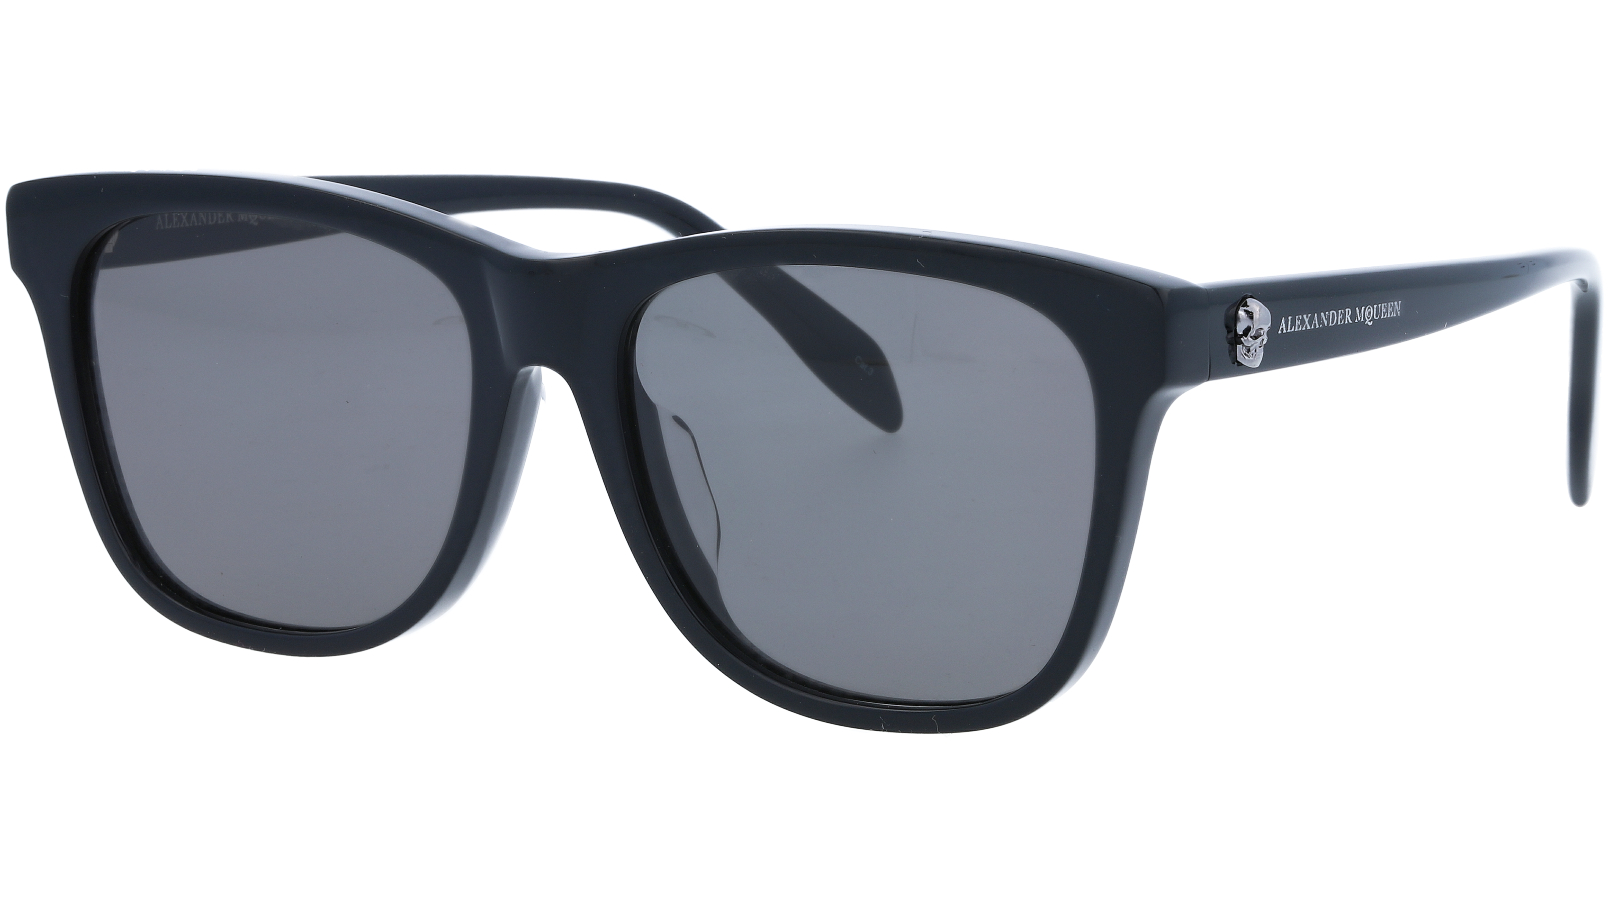 ALEXANDER MCQUEEN AM0158SA 001 56 BLACK Sunglasses